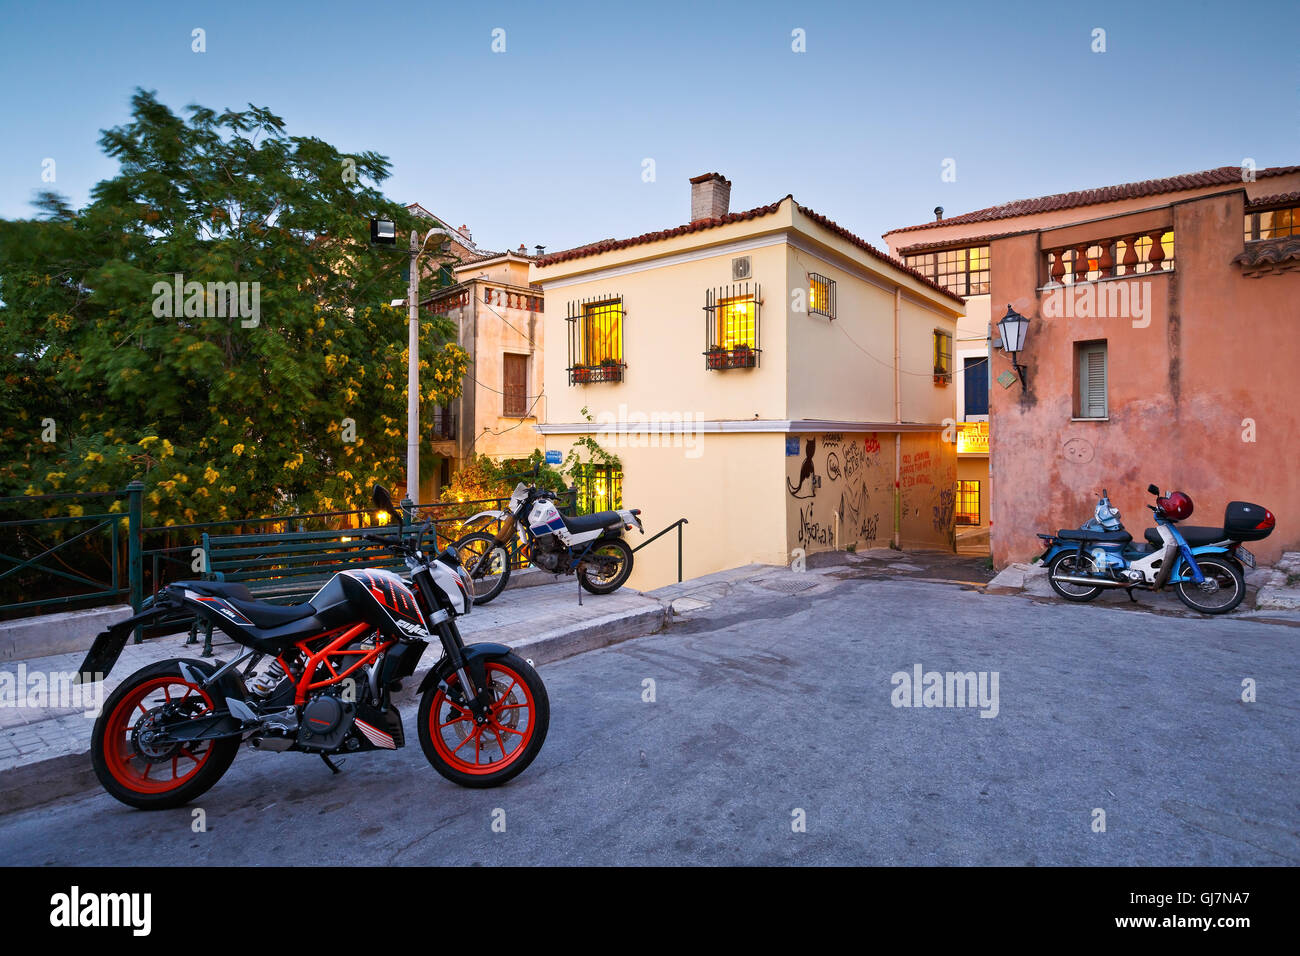 Motorbikes in a street in the old town Plaka, Athens. - Stock Image